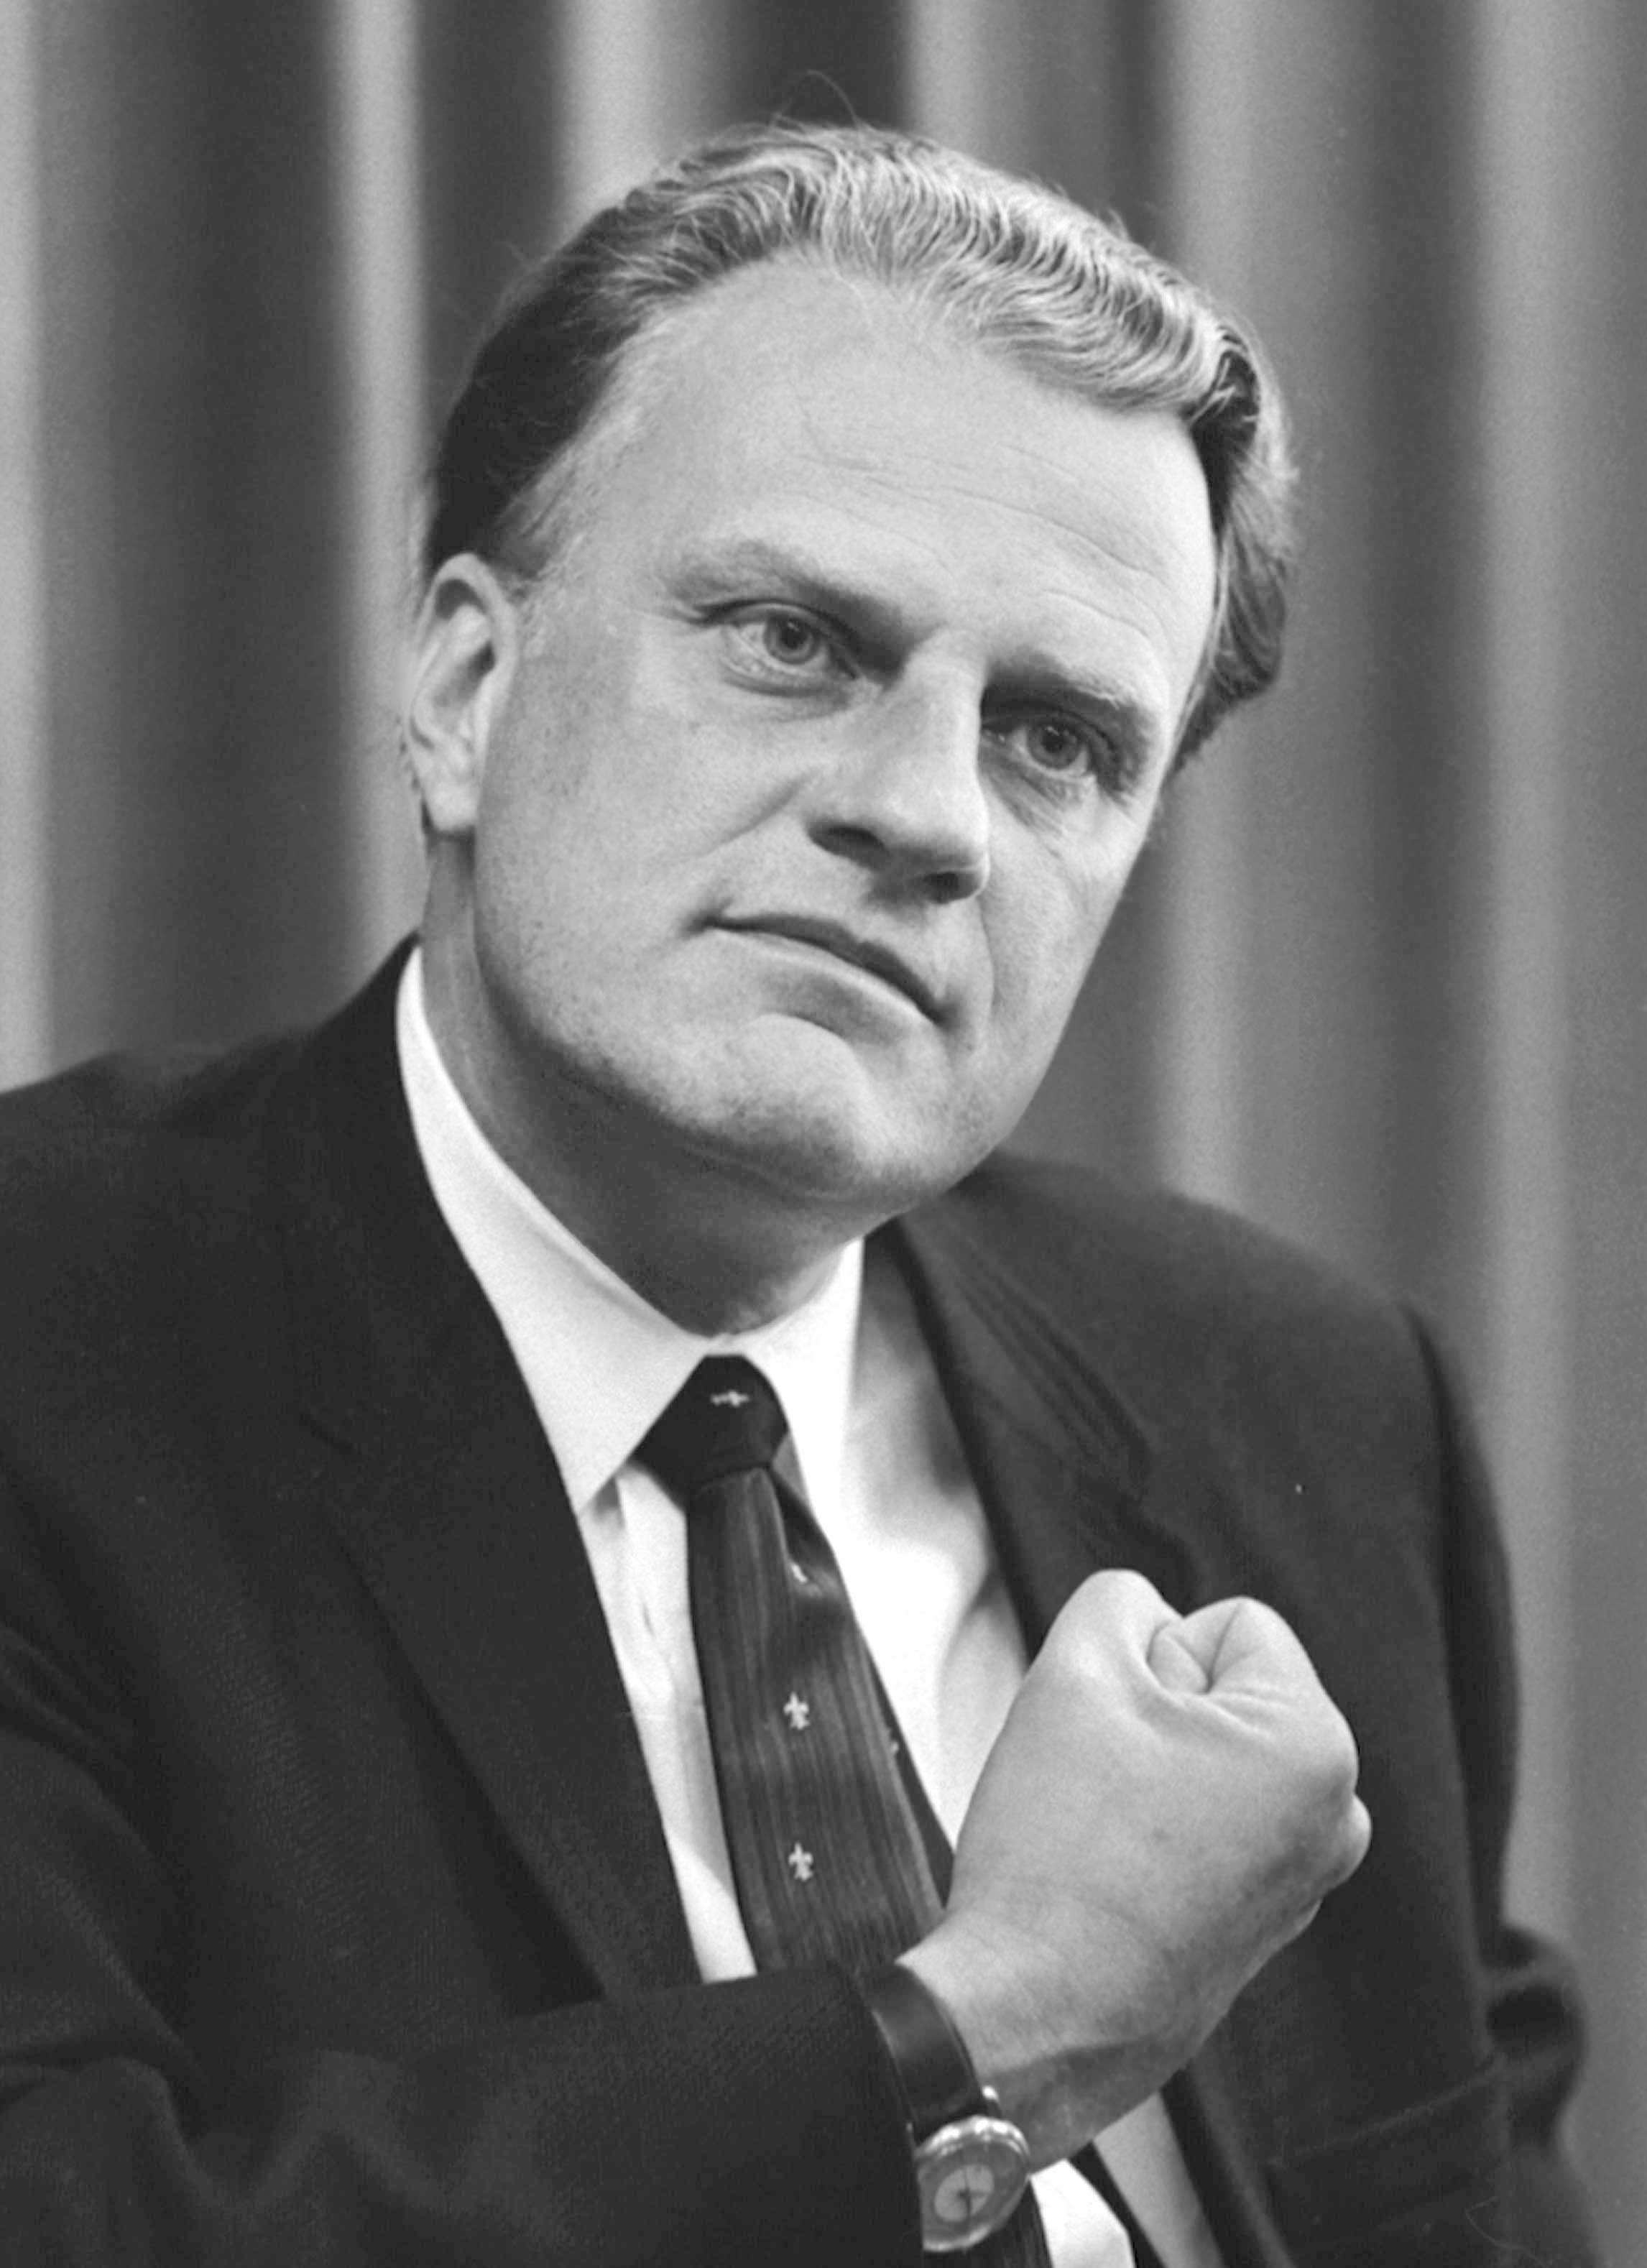 [Image: Billy_Graham_bw_photo%2C_April_11%2C_1966.jpg]